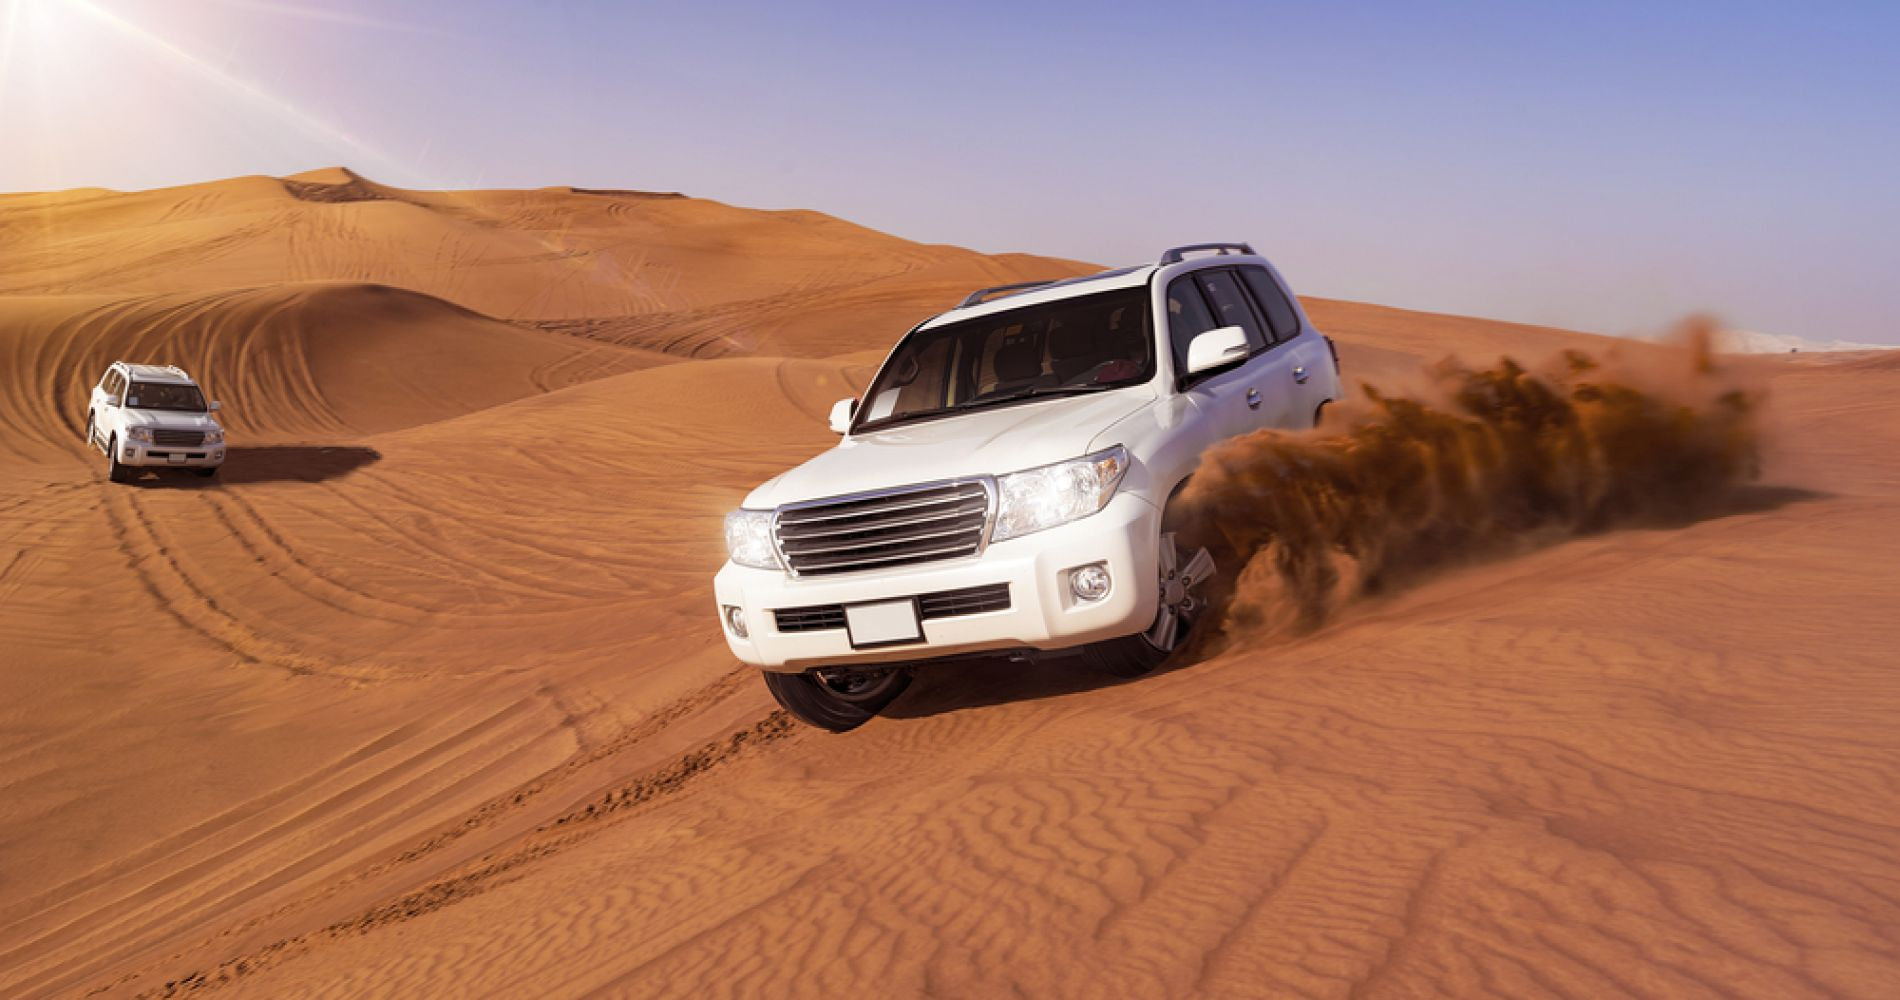 Desert Safari & Camel Ride from Doha for Two